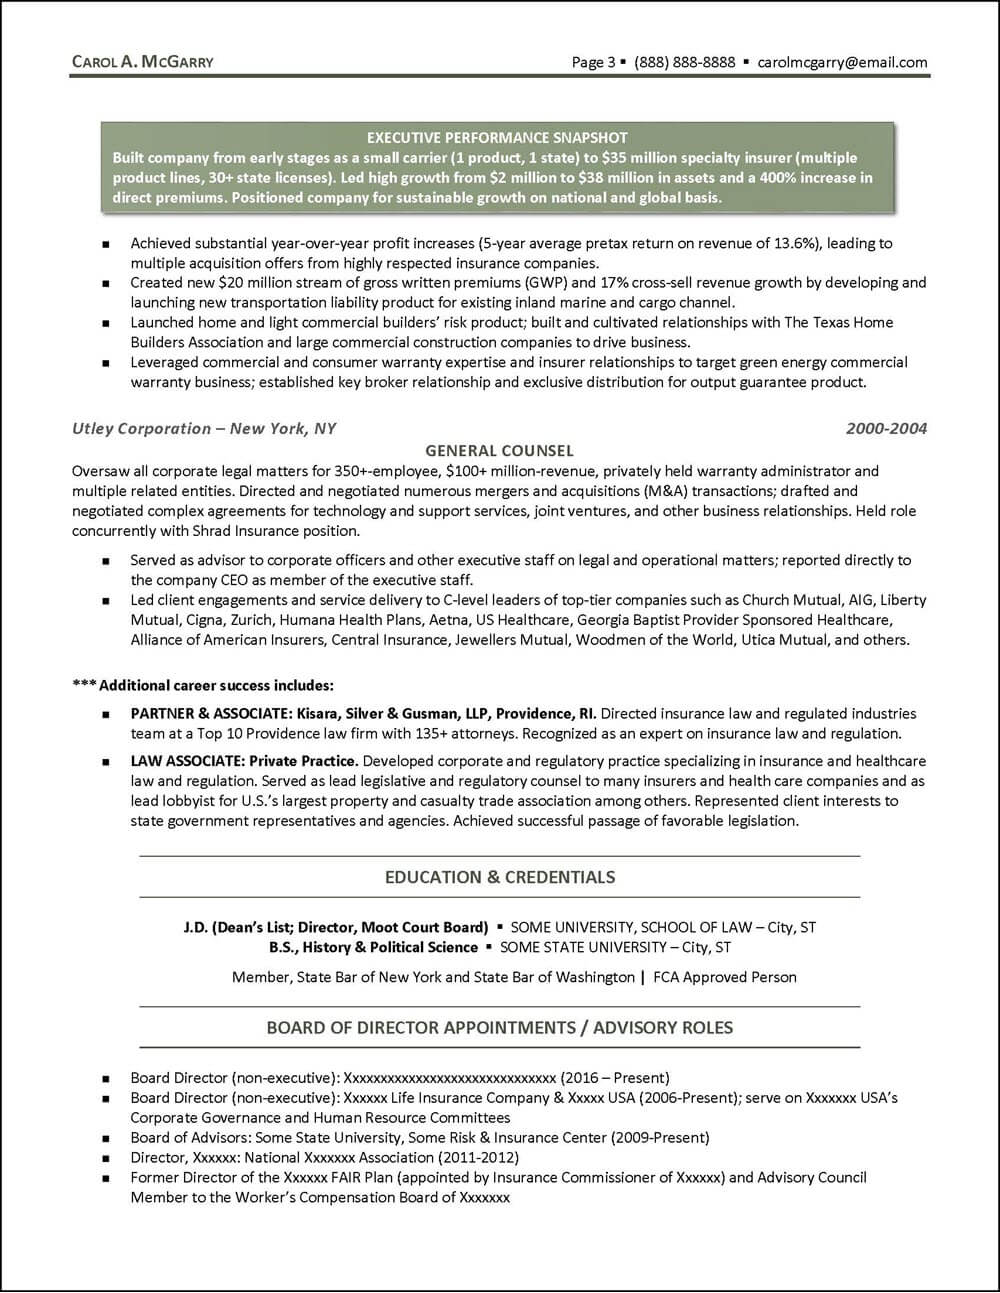 Insurance Industry Executive Resume - page 3